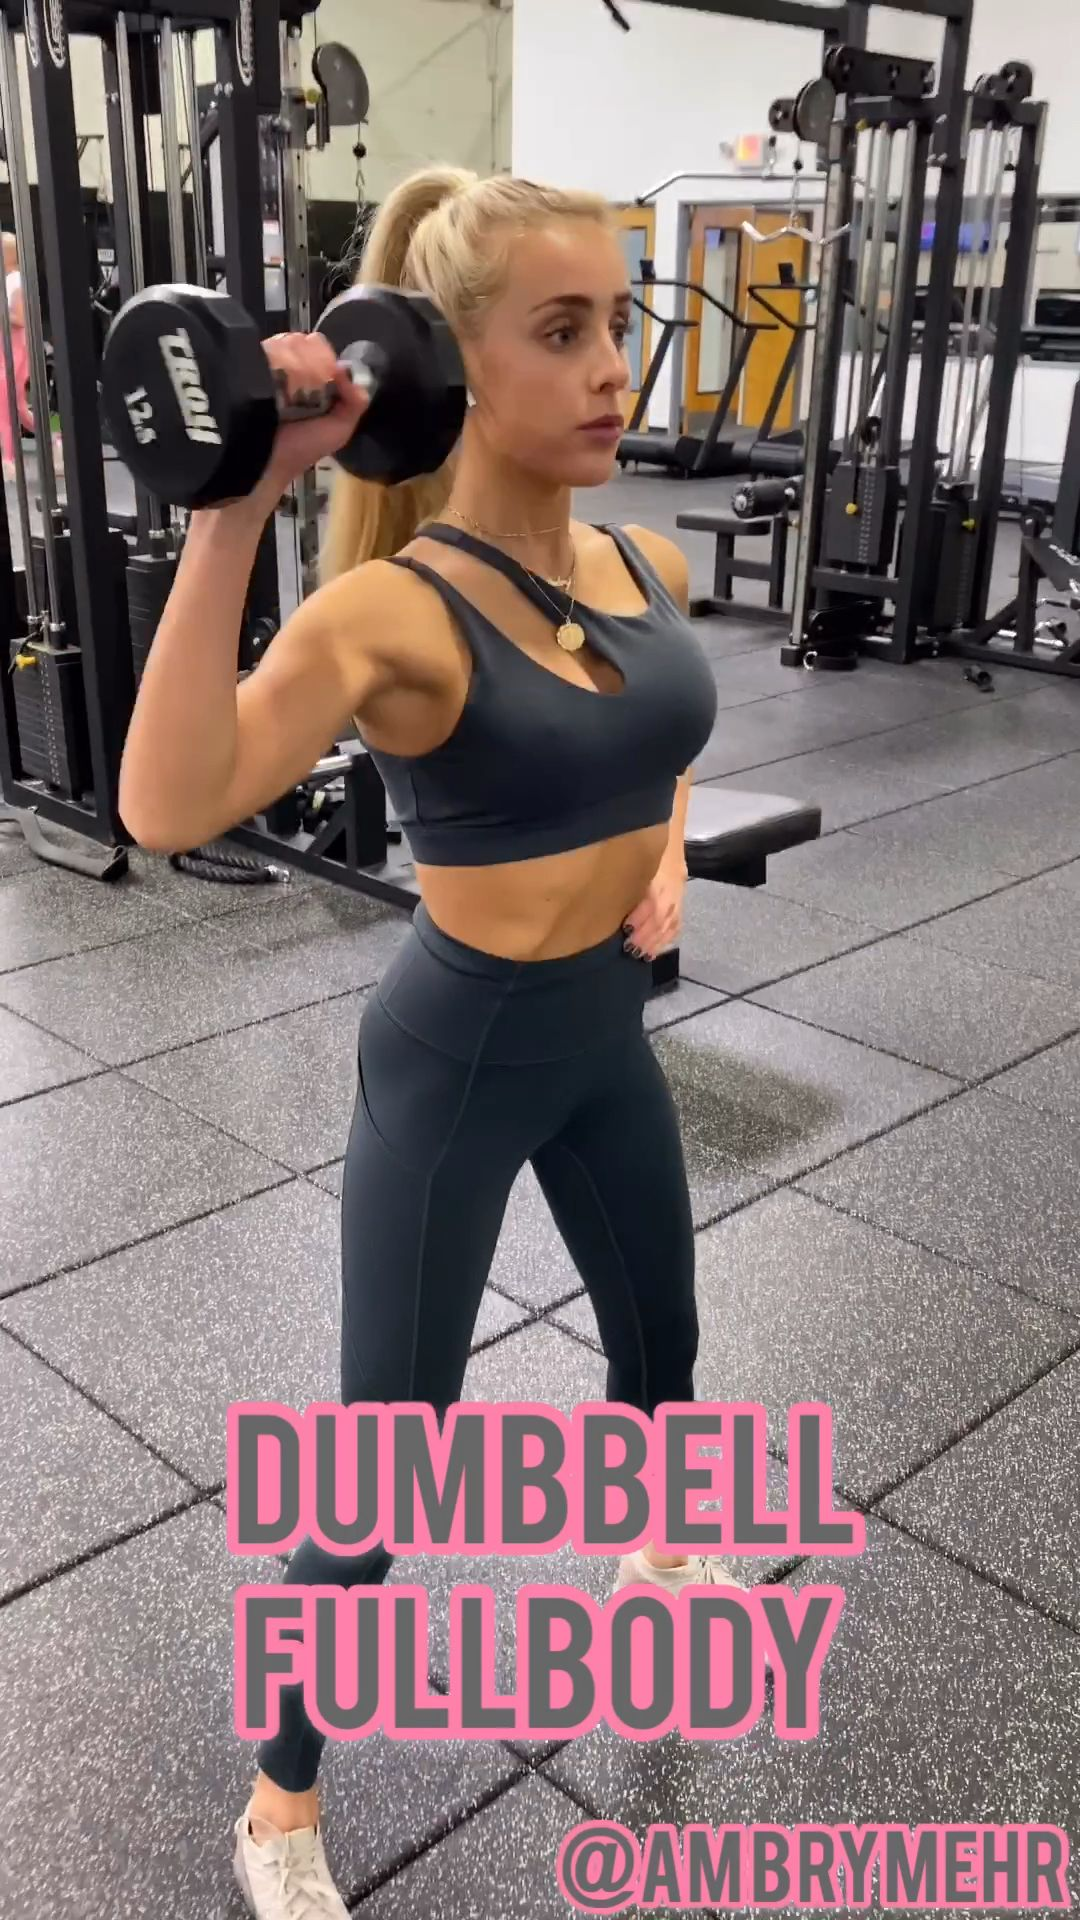 Full Body Workout - Follow @ambrymehr IG for free workouts!